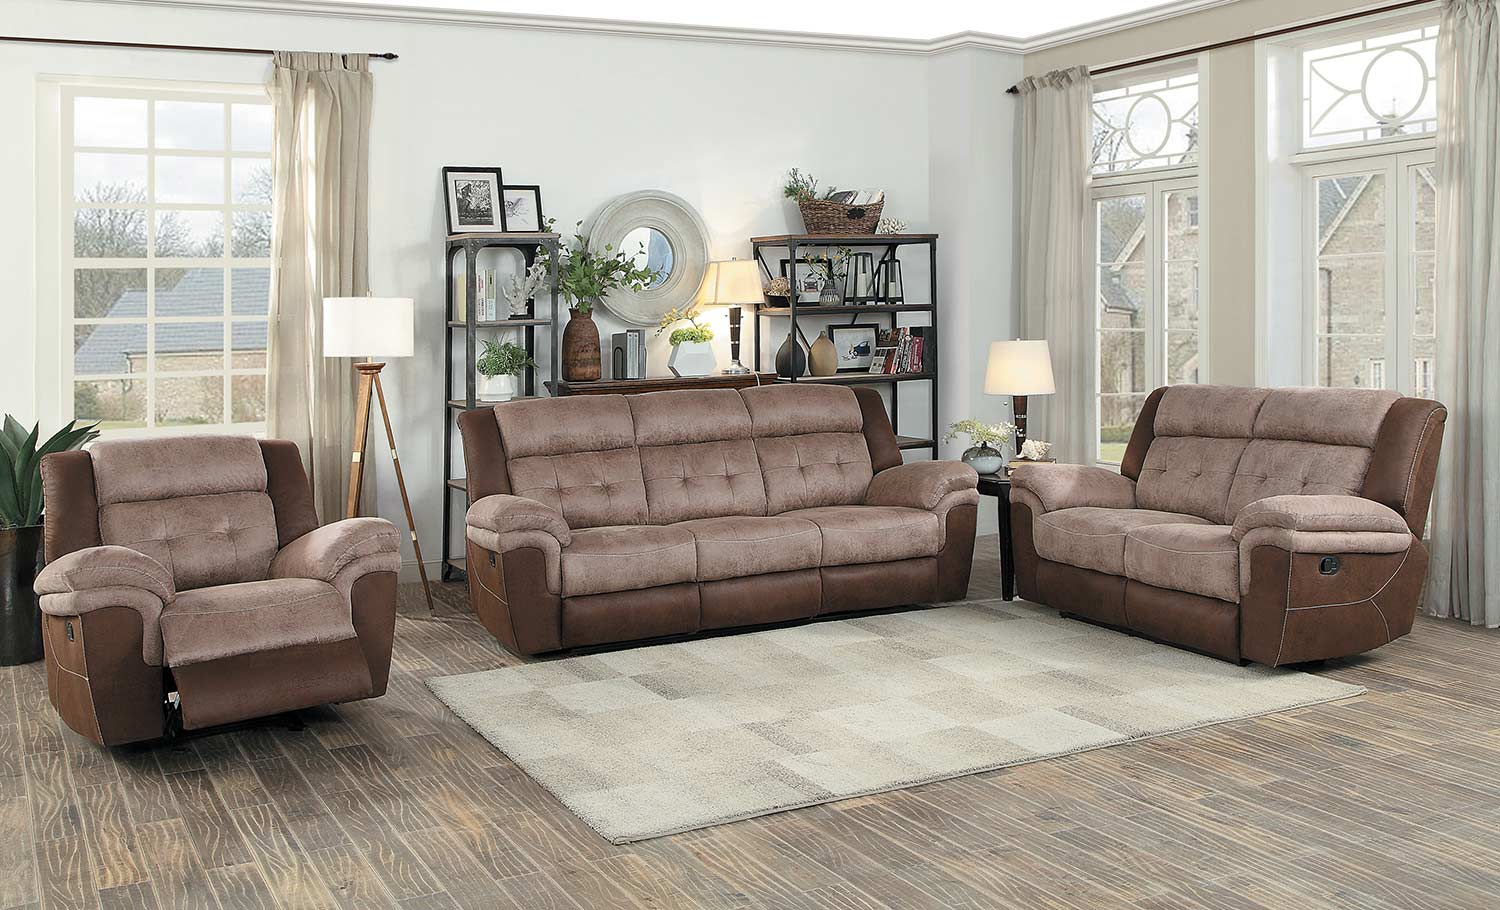 Homelegance Chai Reclining Sofa Set - Brown and dark brown polished microfiber